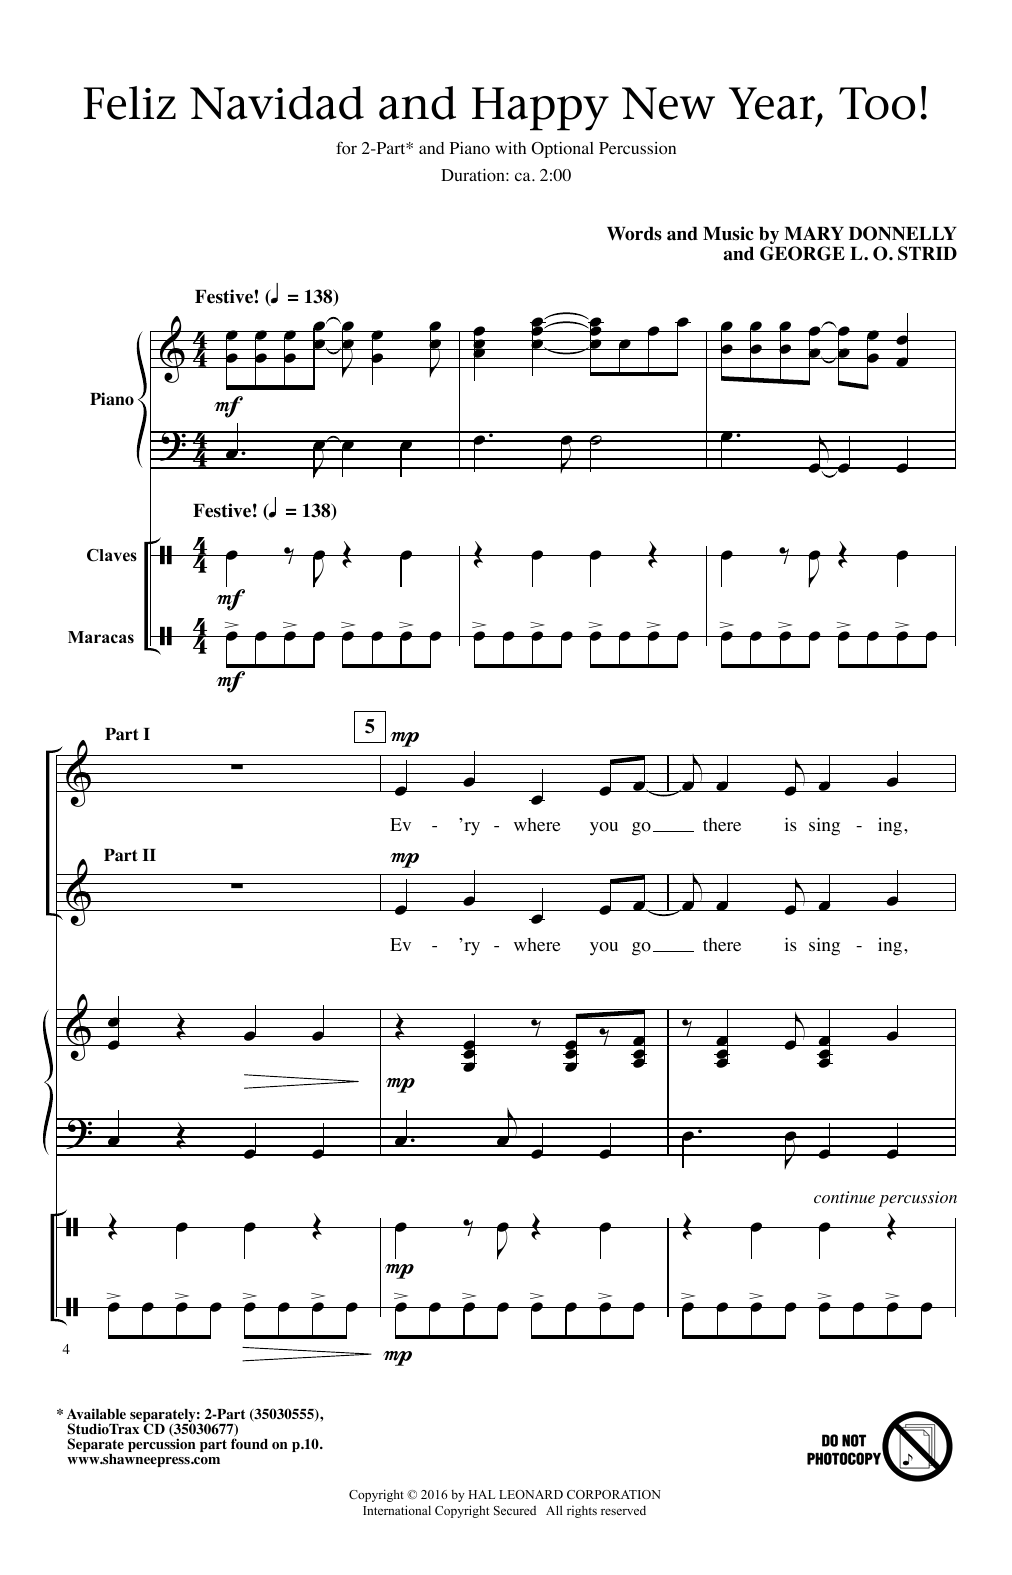 Mary Donnelly Feliz Navidad And Happy New Year Too Sheet Music